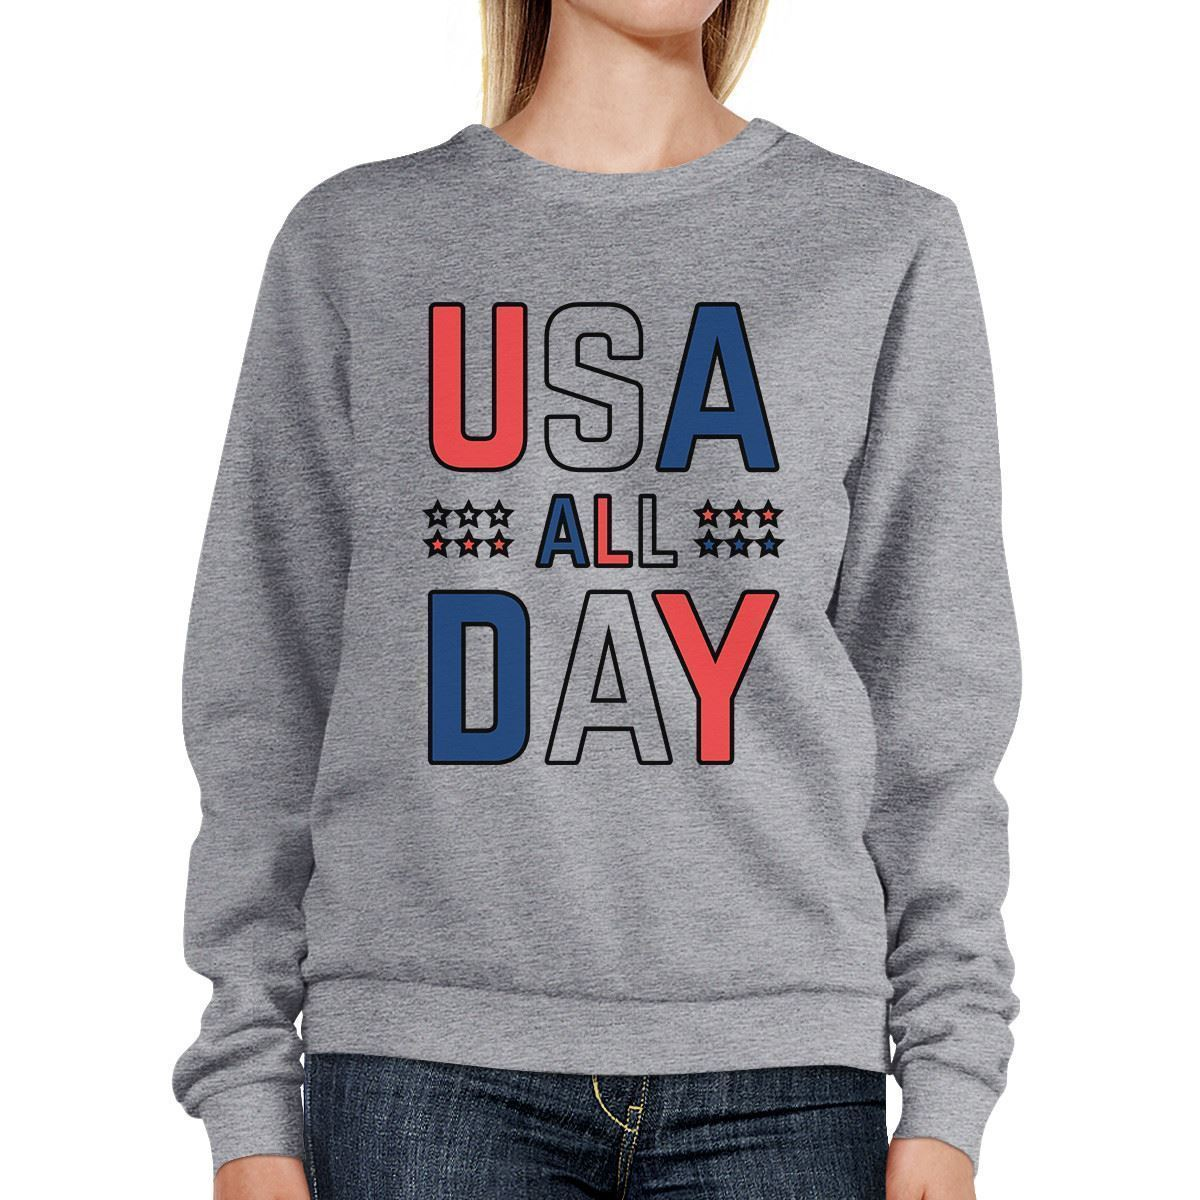 USA All Day Unique Design Graphic Sweatshirt For Independence Day - $20.99 - $21.99